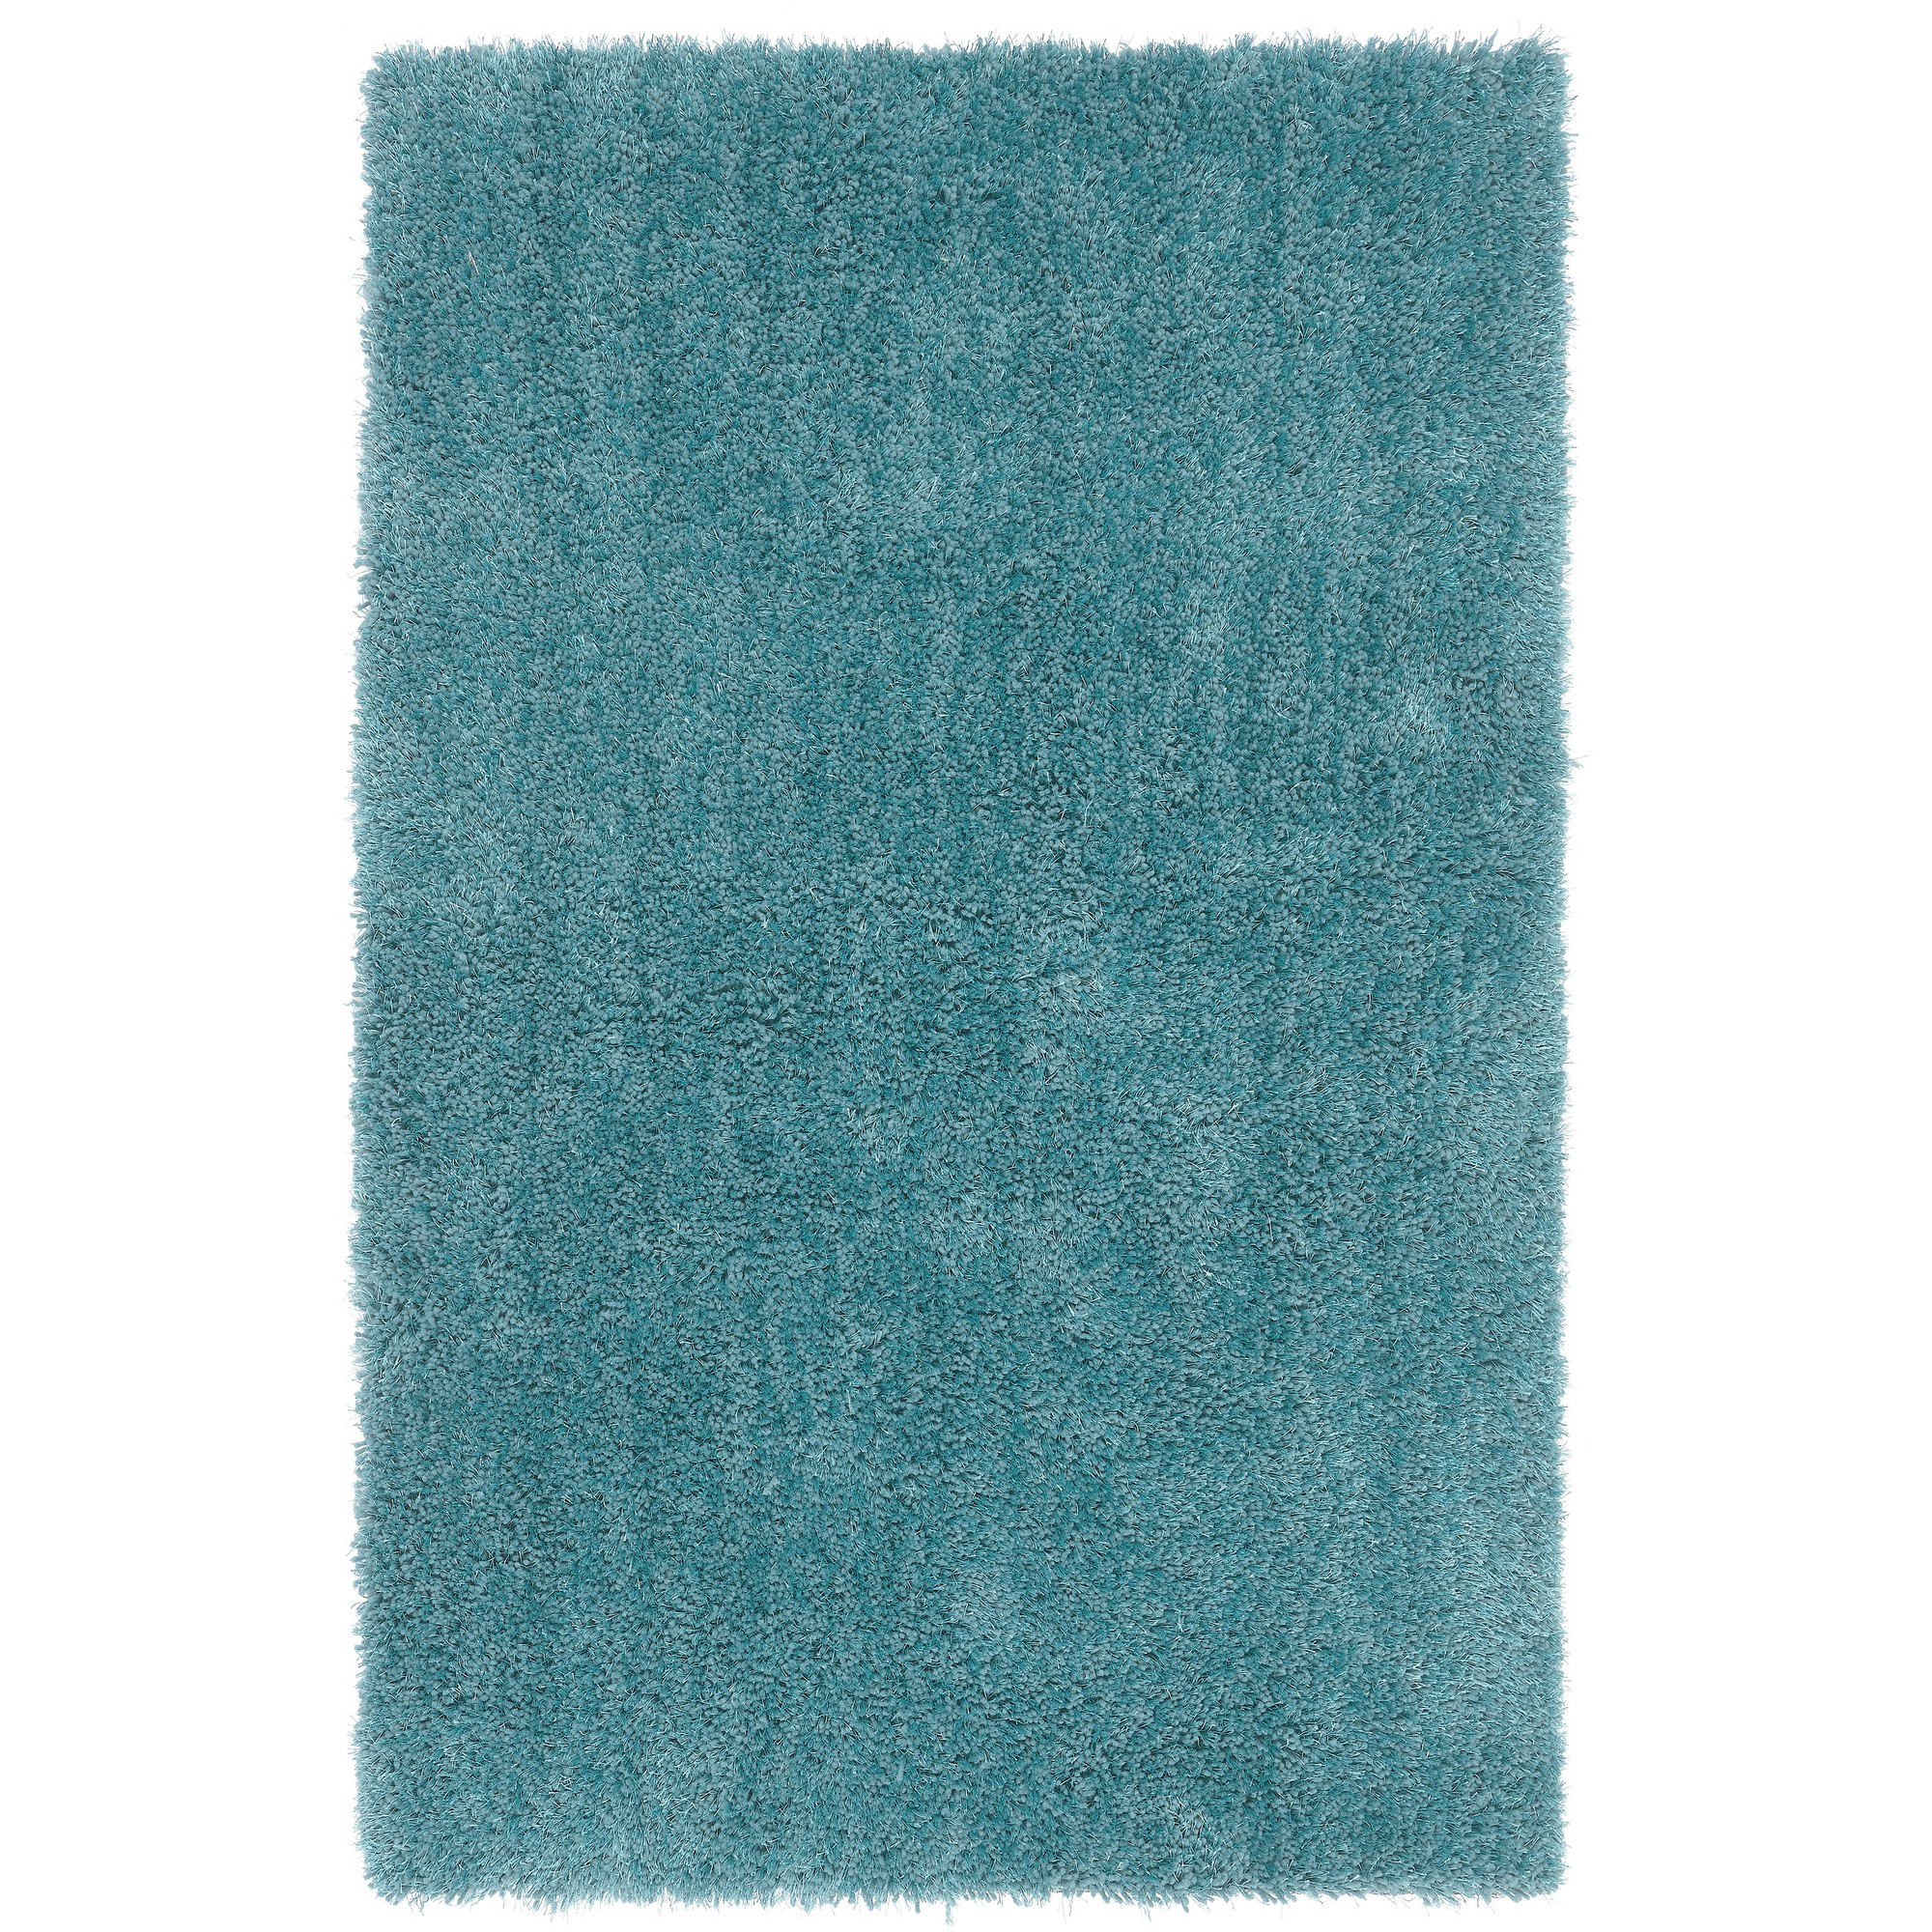 Diva Shaggy Rugs in Teal